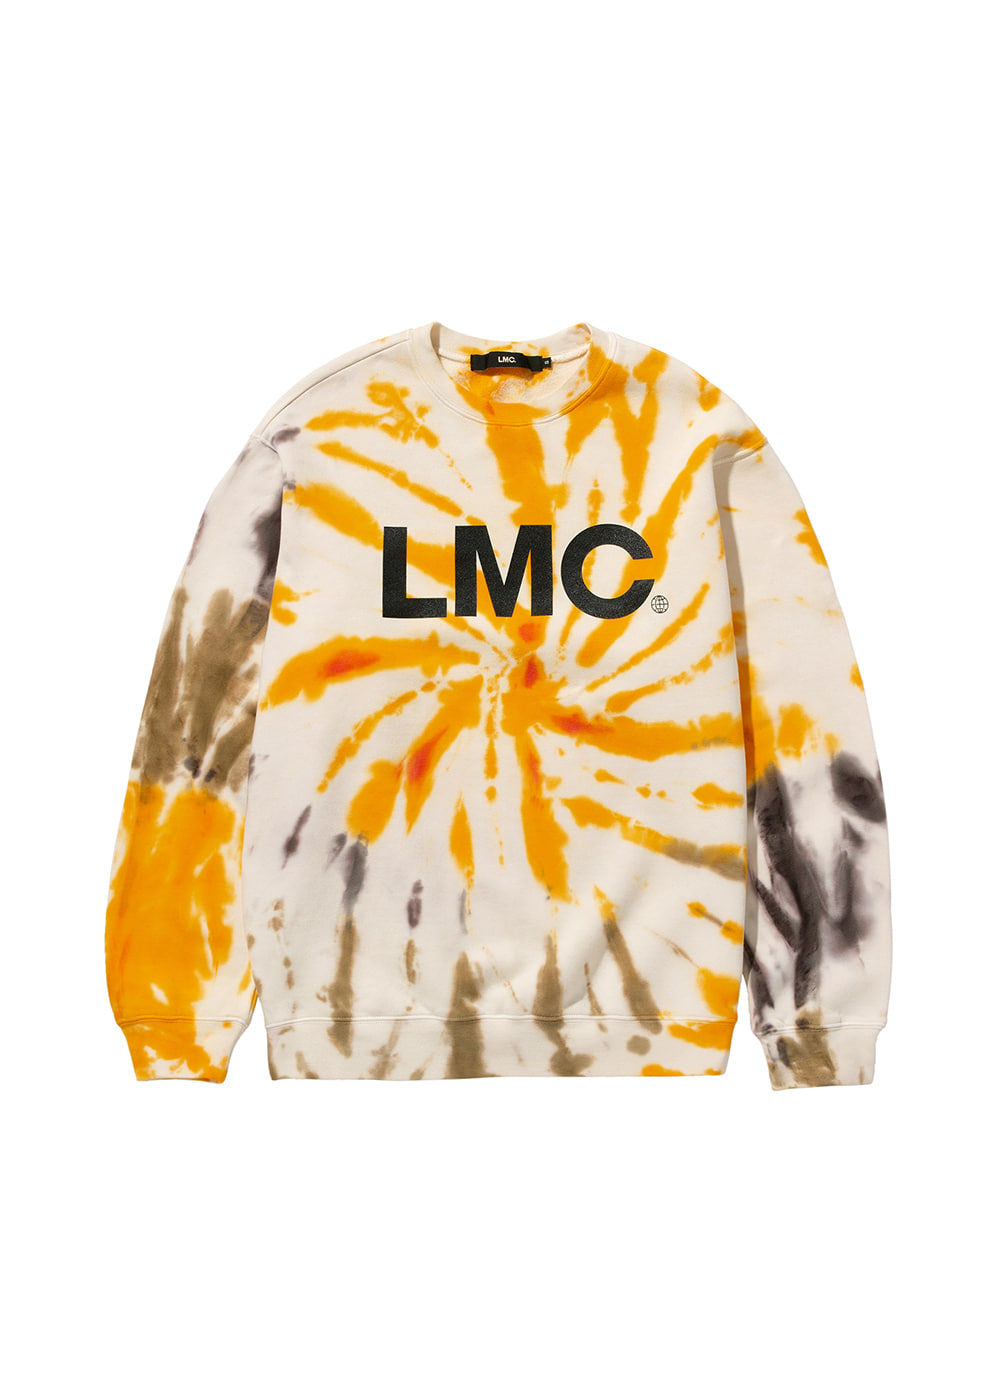 LMC TIE DYE OG WHEEL SWEATSHIRT yellow